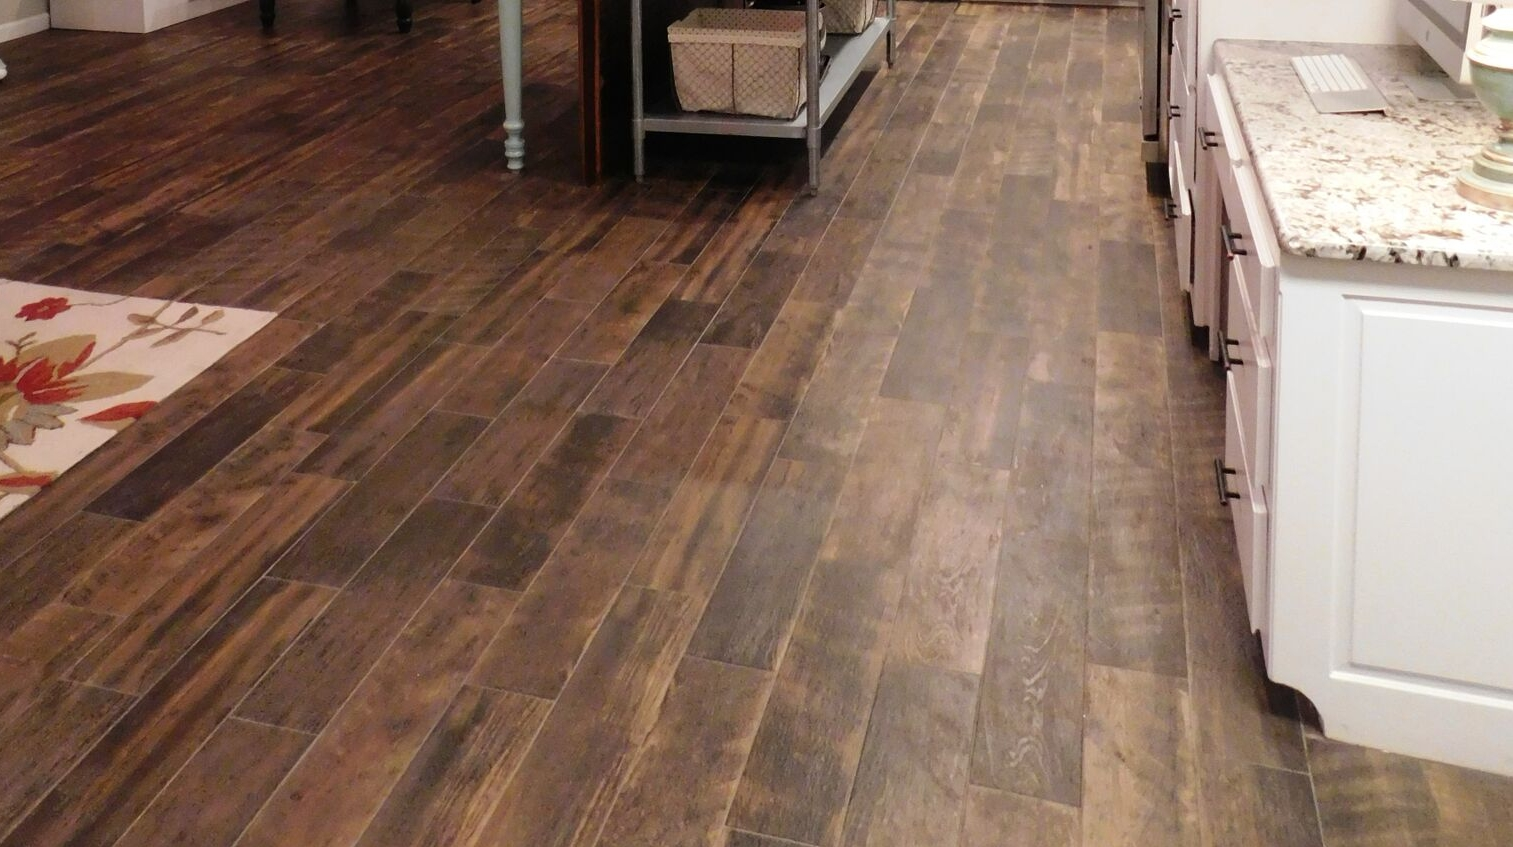 Floor & Surface - Floors aren't just to walk on! Choosing the right floor is vital, it can make or break your entire design.